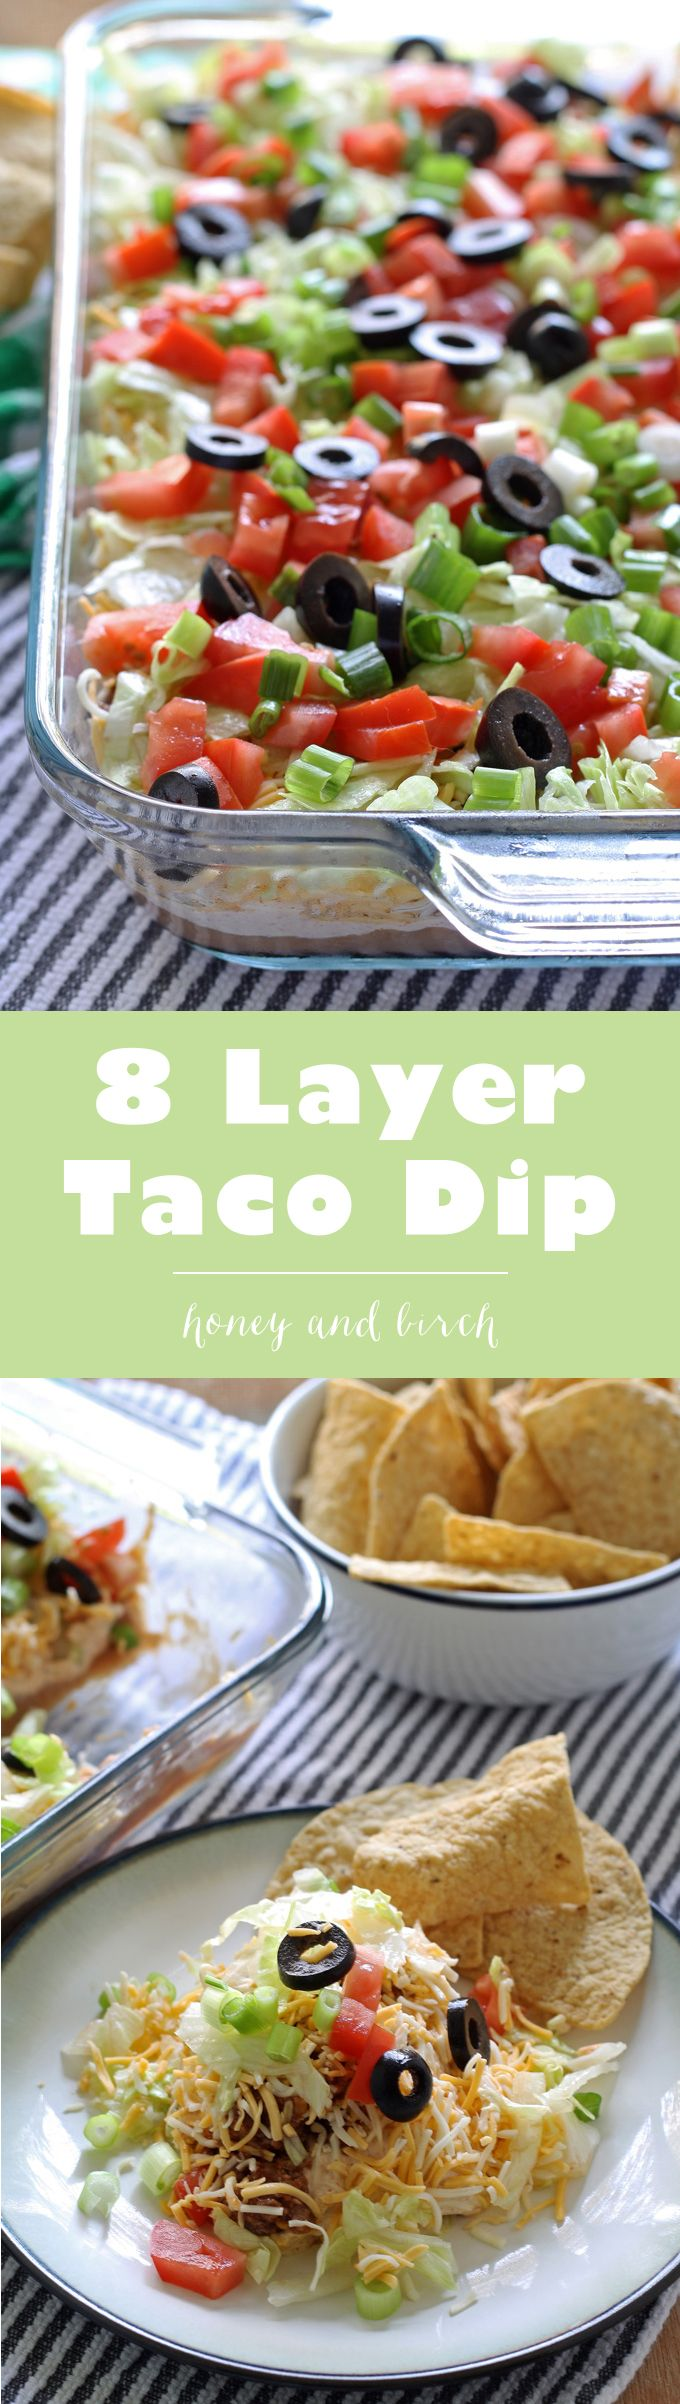 Go big with this 8 layer taco dip recipe – it is the perfect appetizer for large crowds. It's full of meat, cheese, veggies and more!